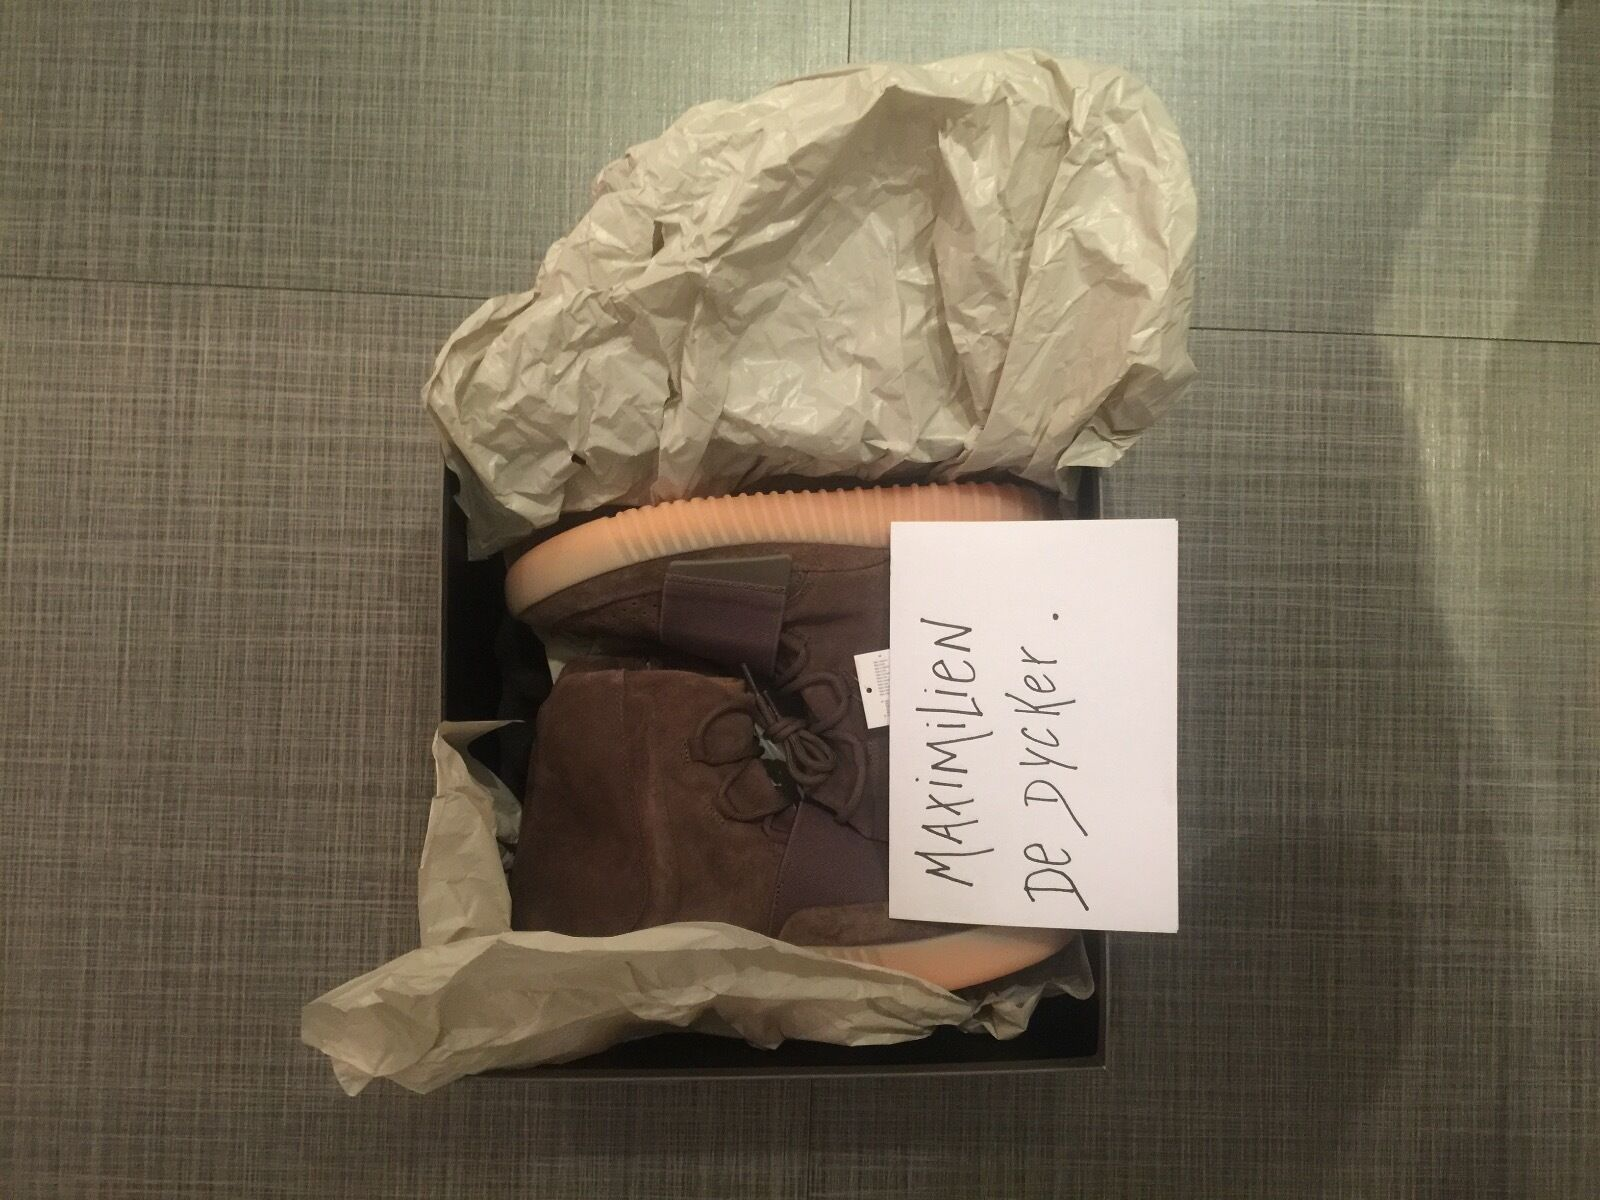 Yeezy 750 CHOCOLATE US 11.5